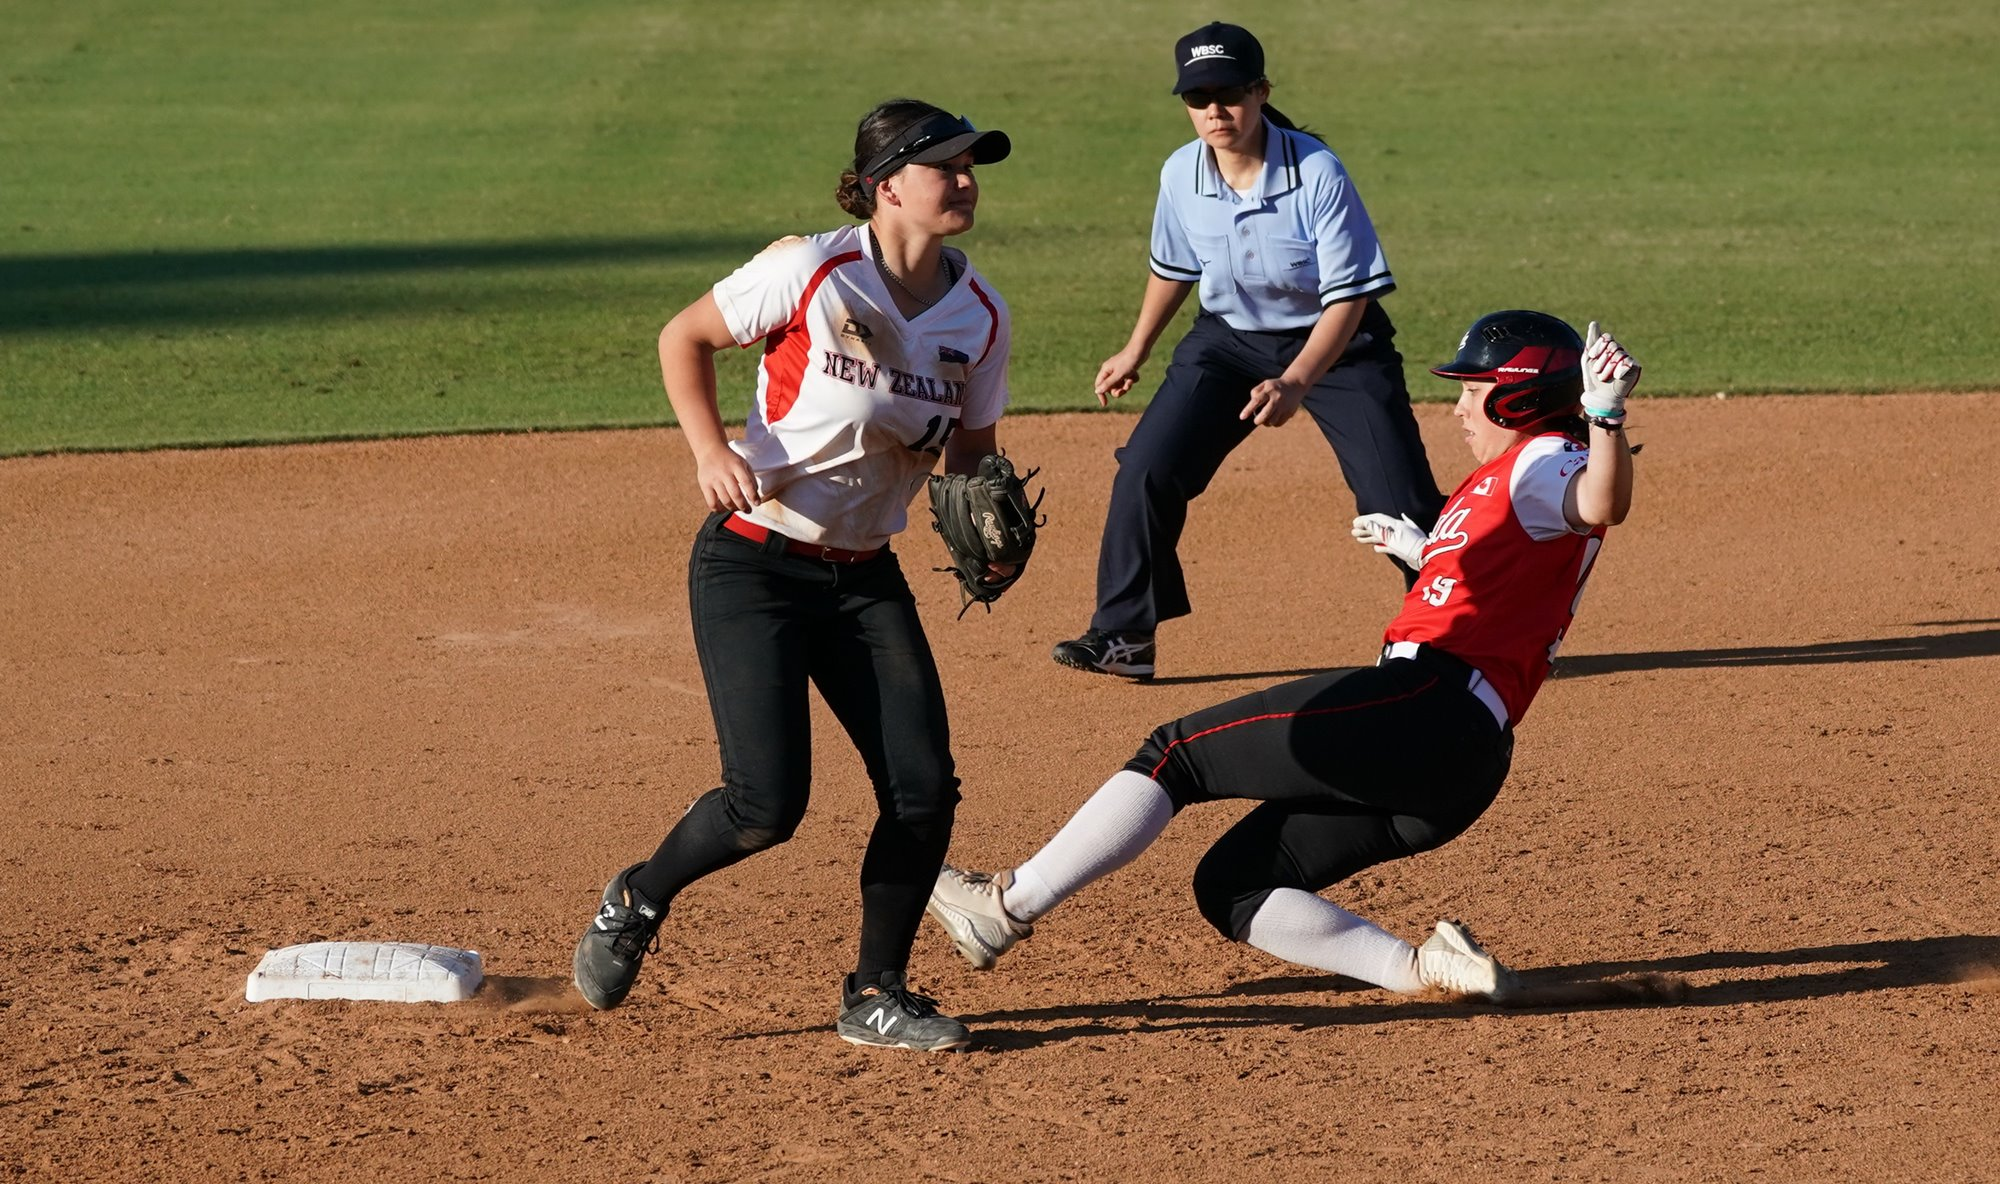 Shortstop Caytlin Lewis proved to be New Zealand's leader